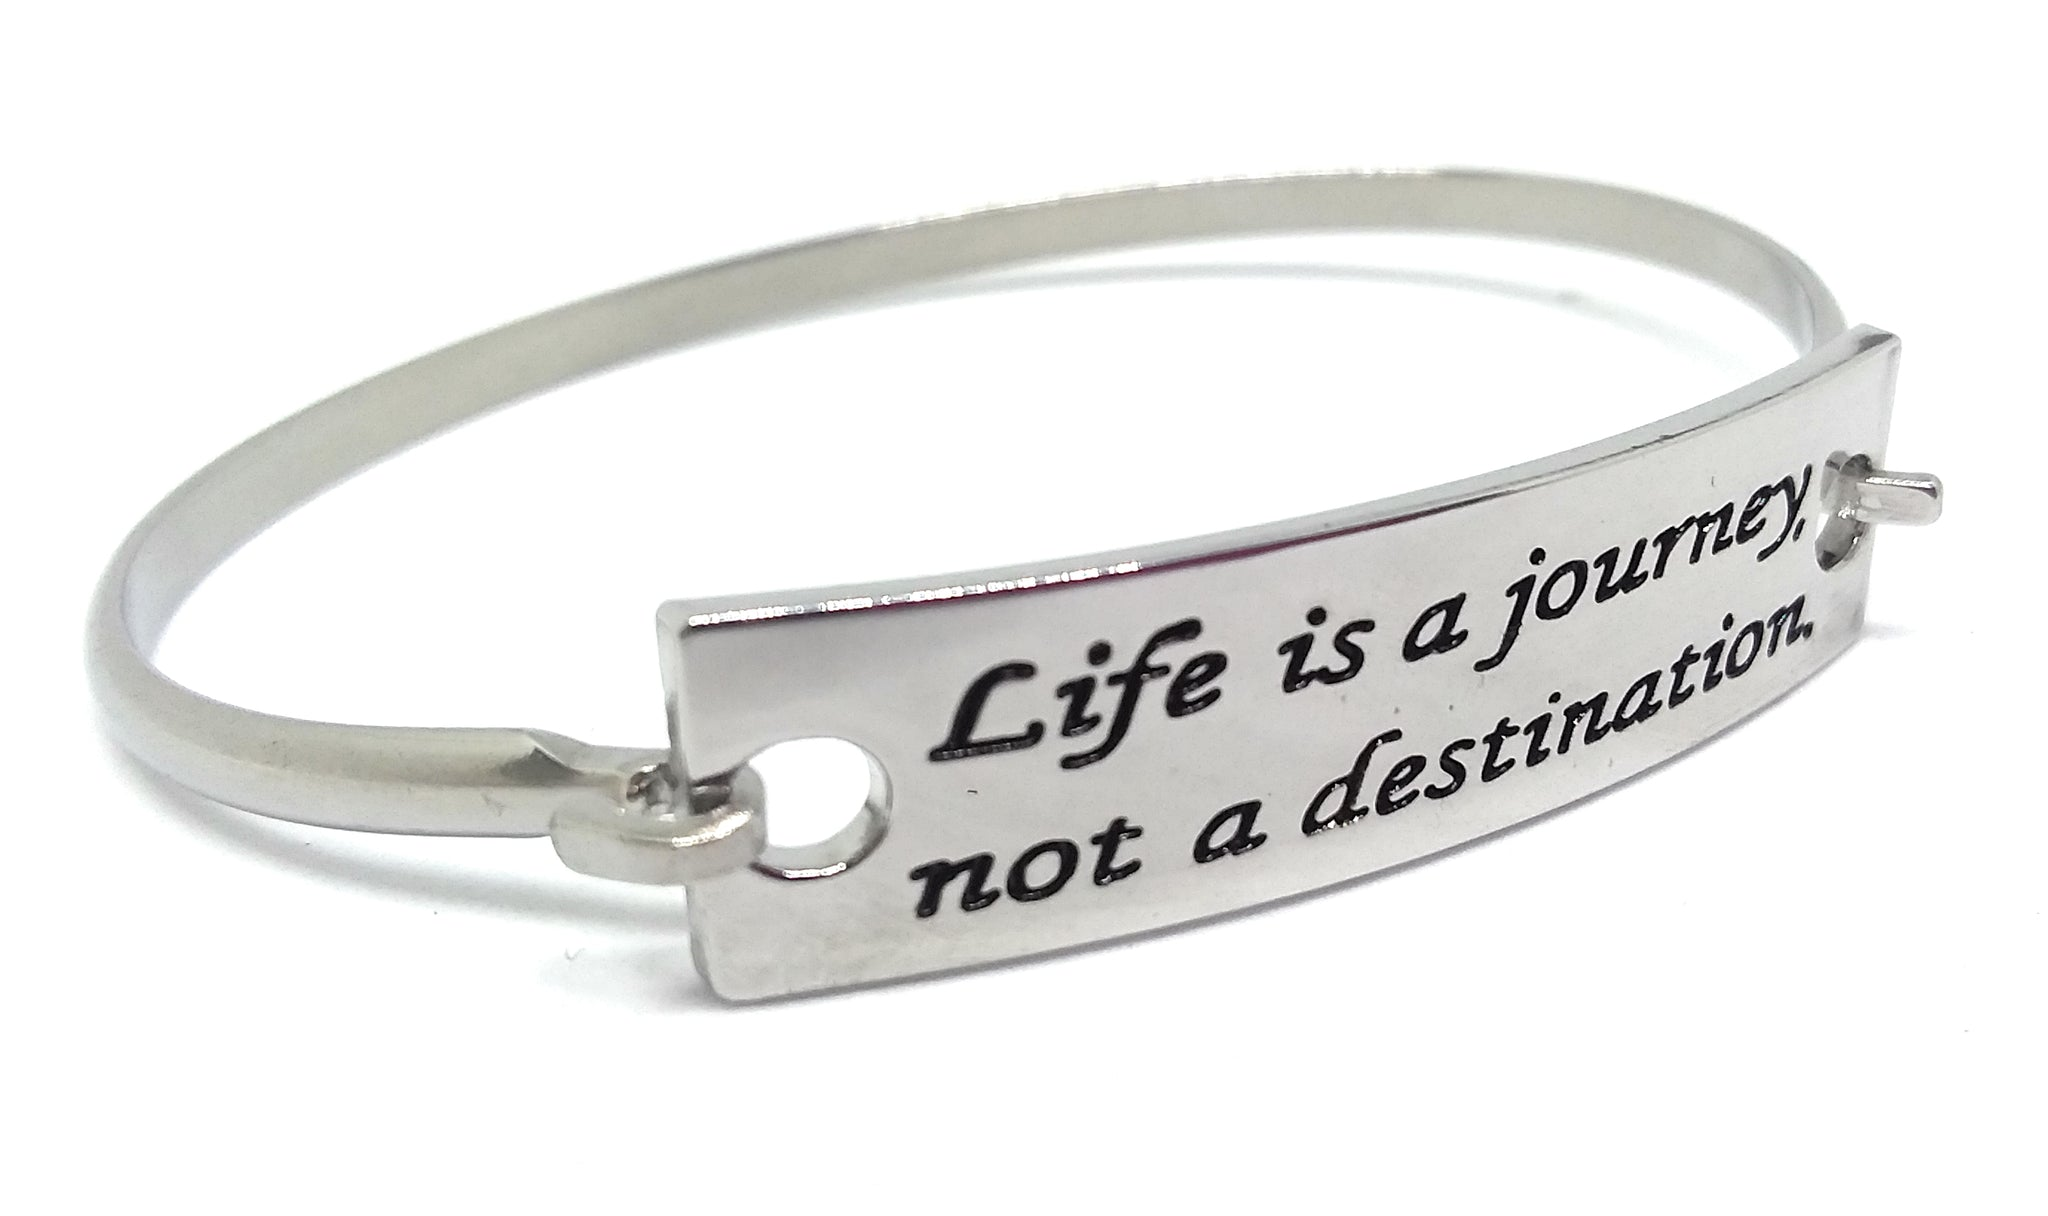 Stainless Steel Inspirational Message Connector Bangle Bracelet - Life is a journey not a destination